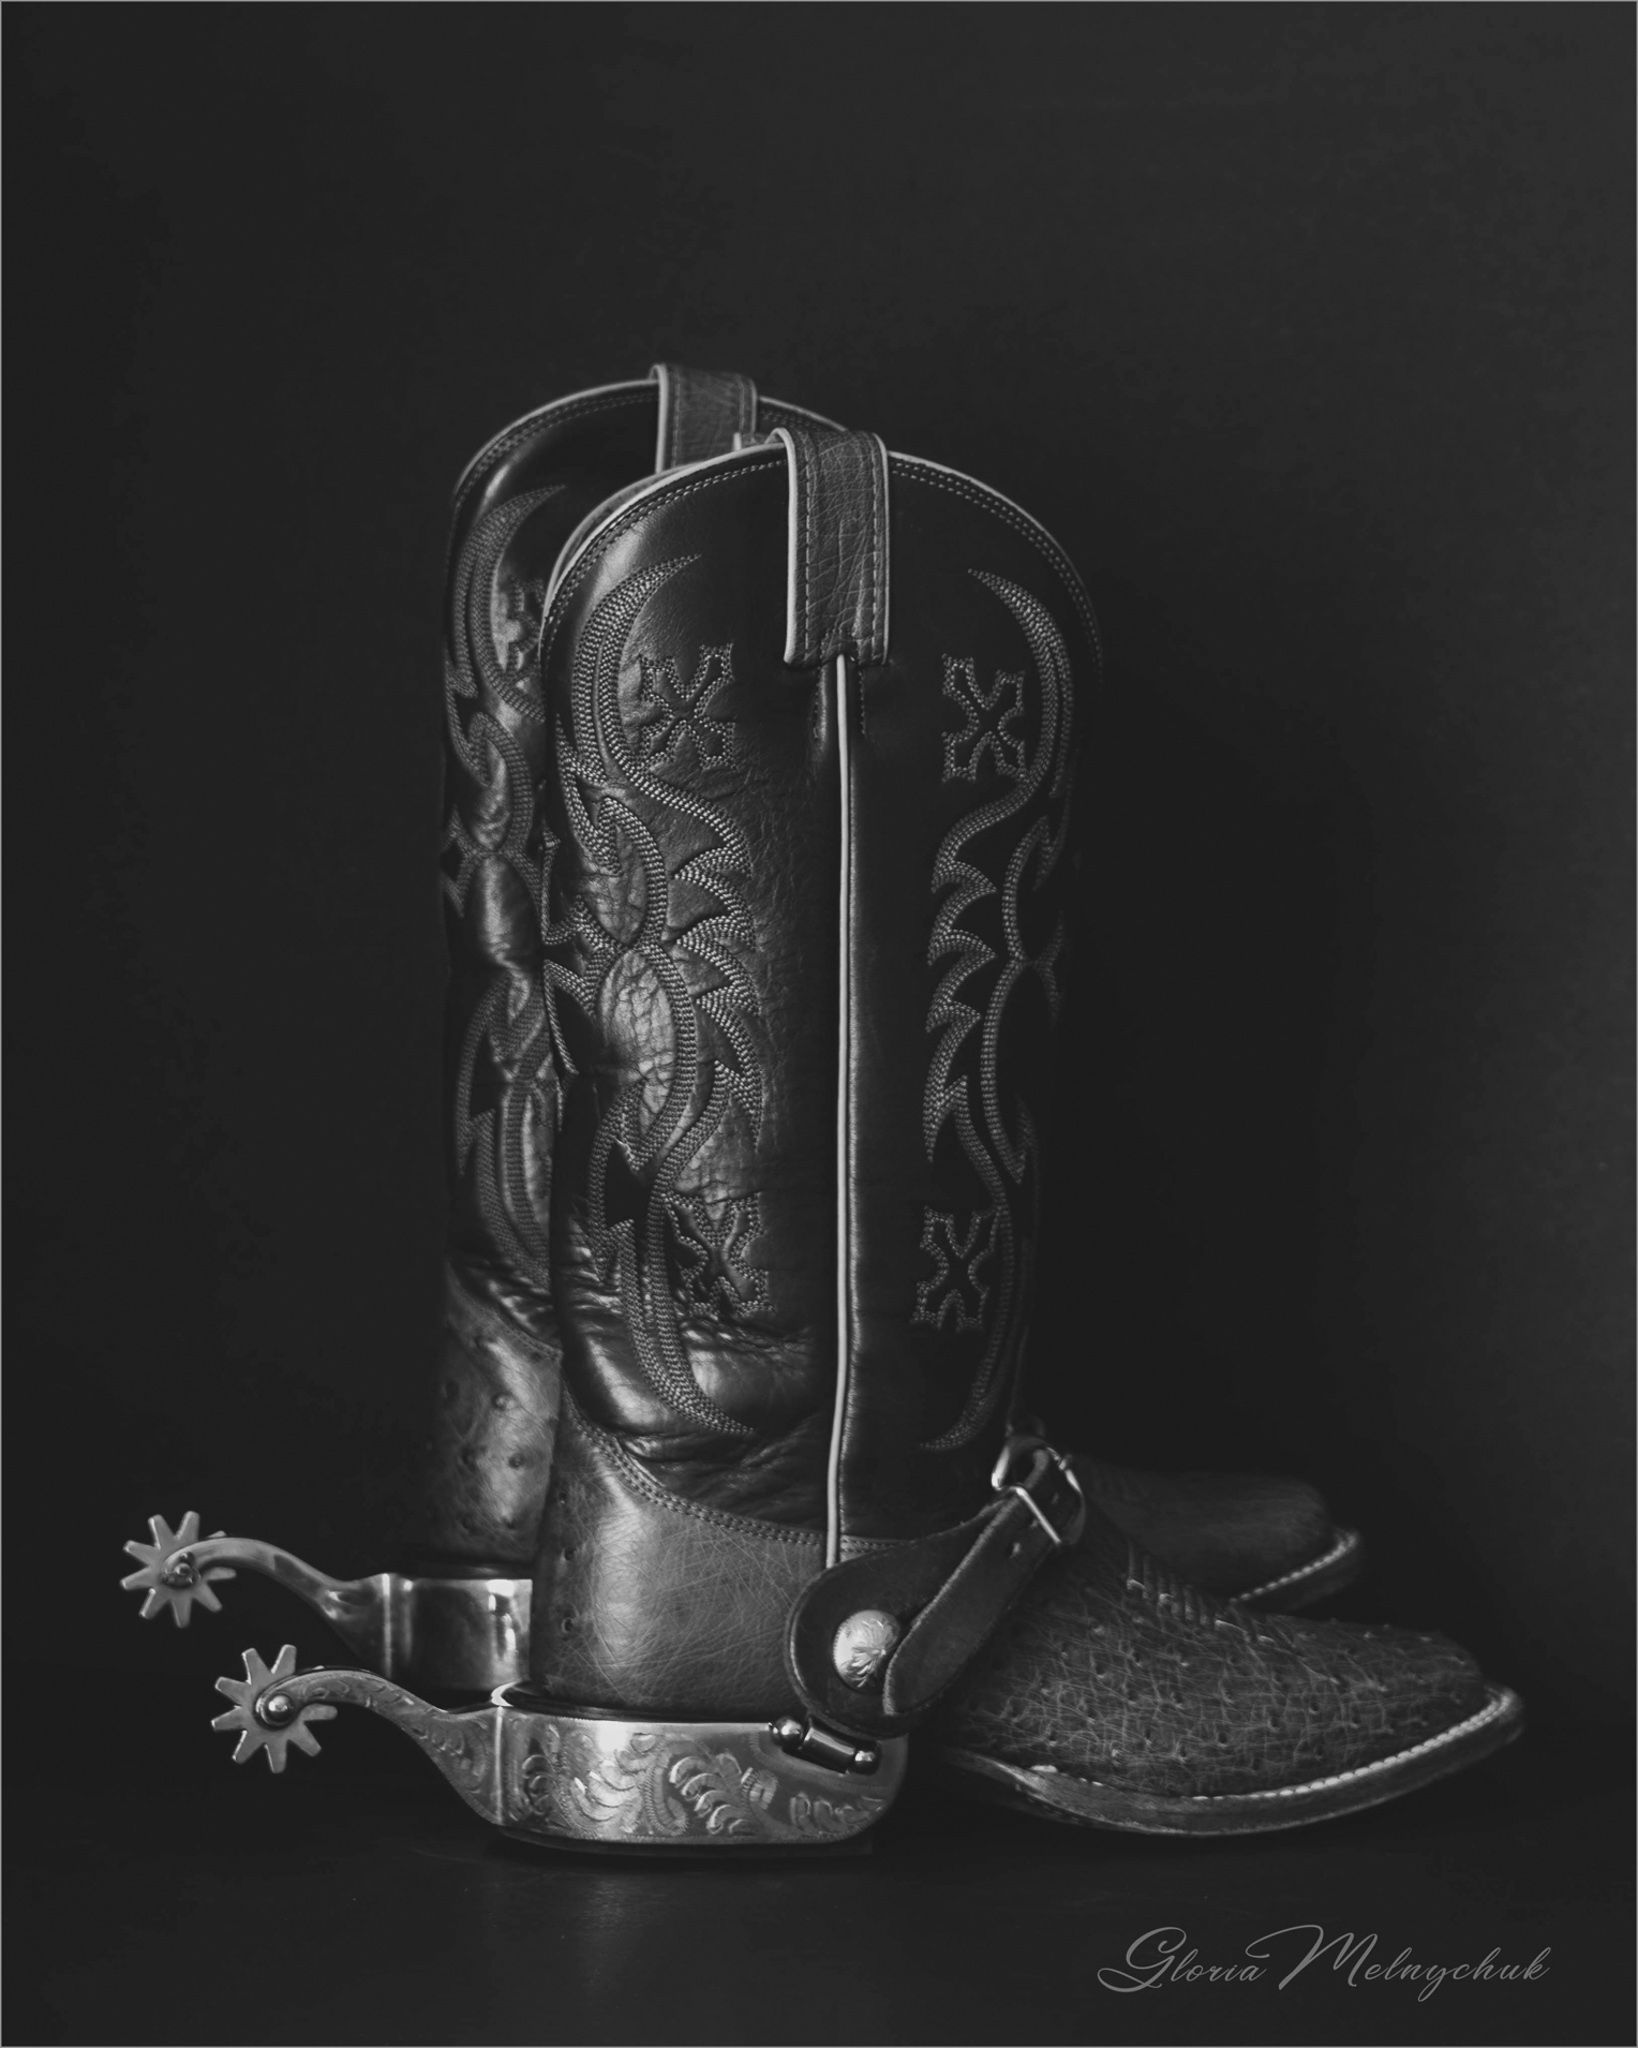 Boots and Spurs © Gloria Melnychuk